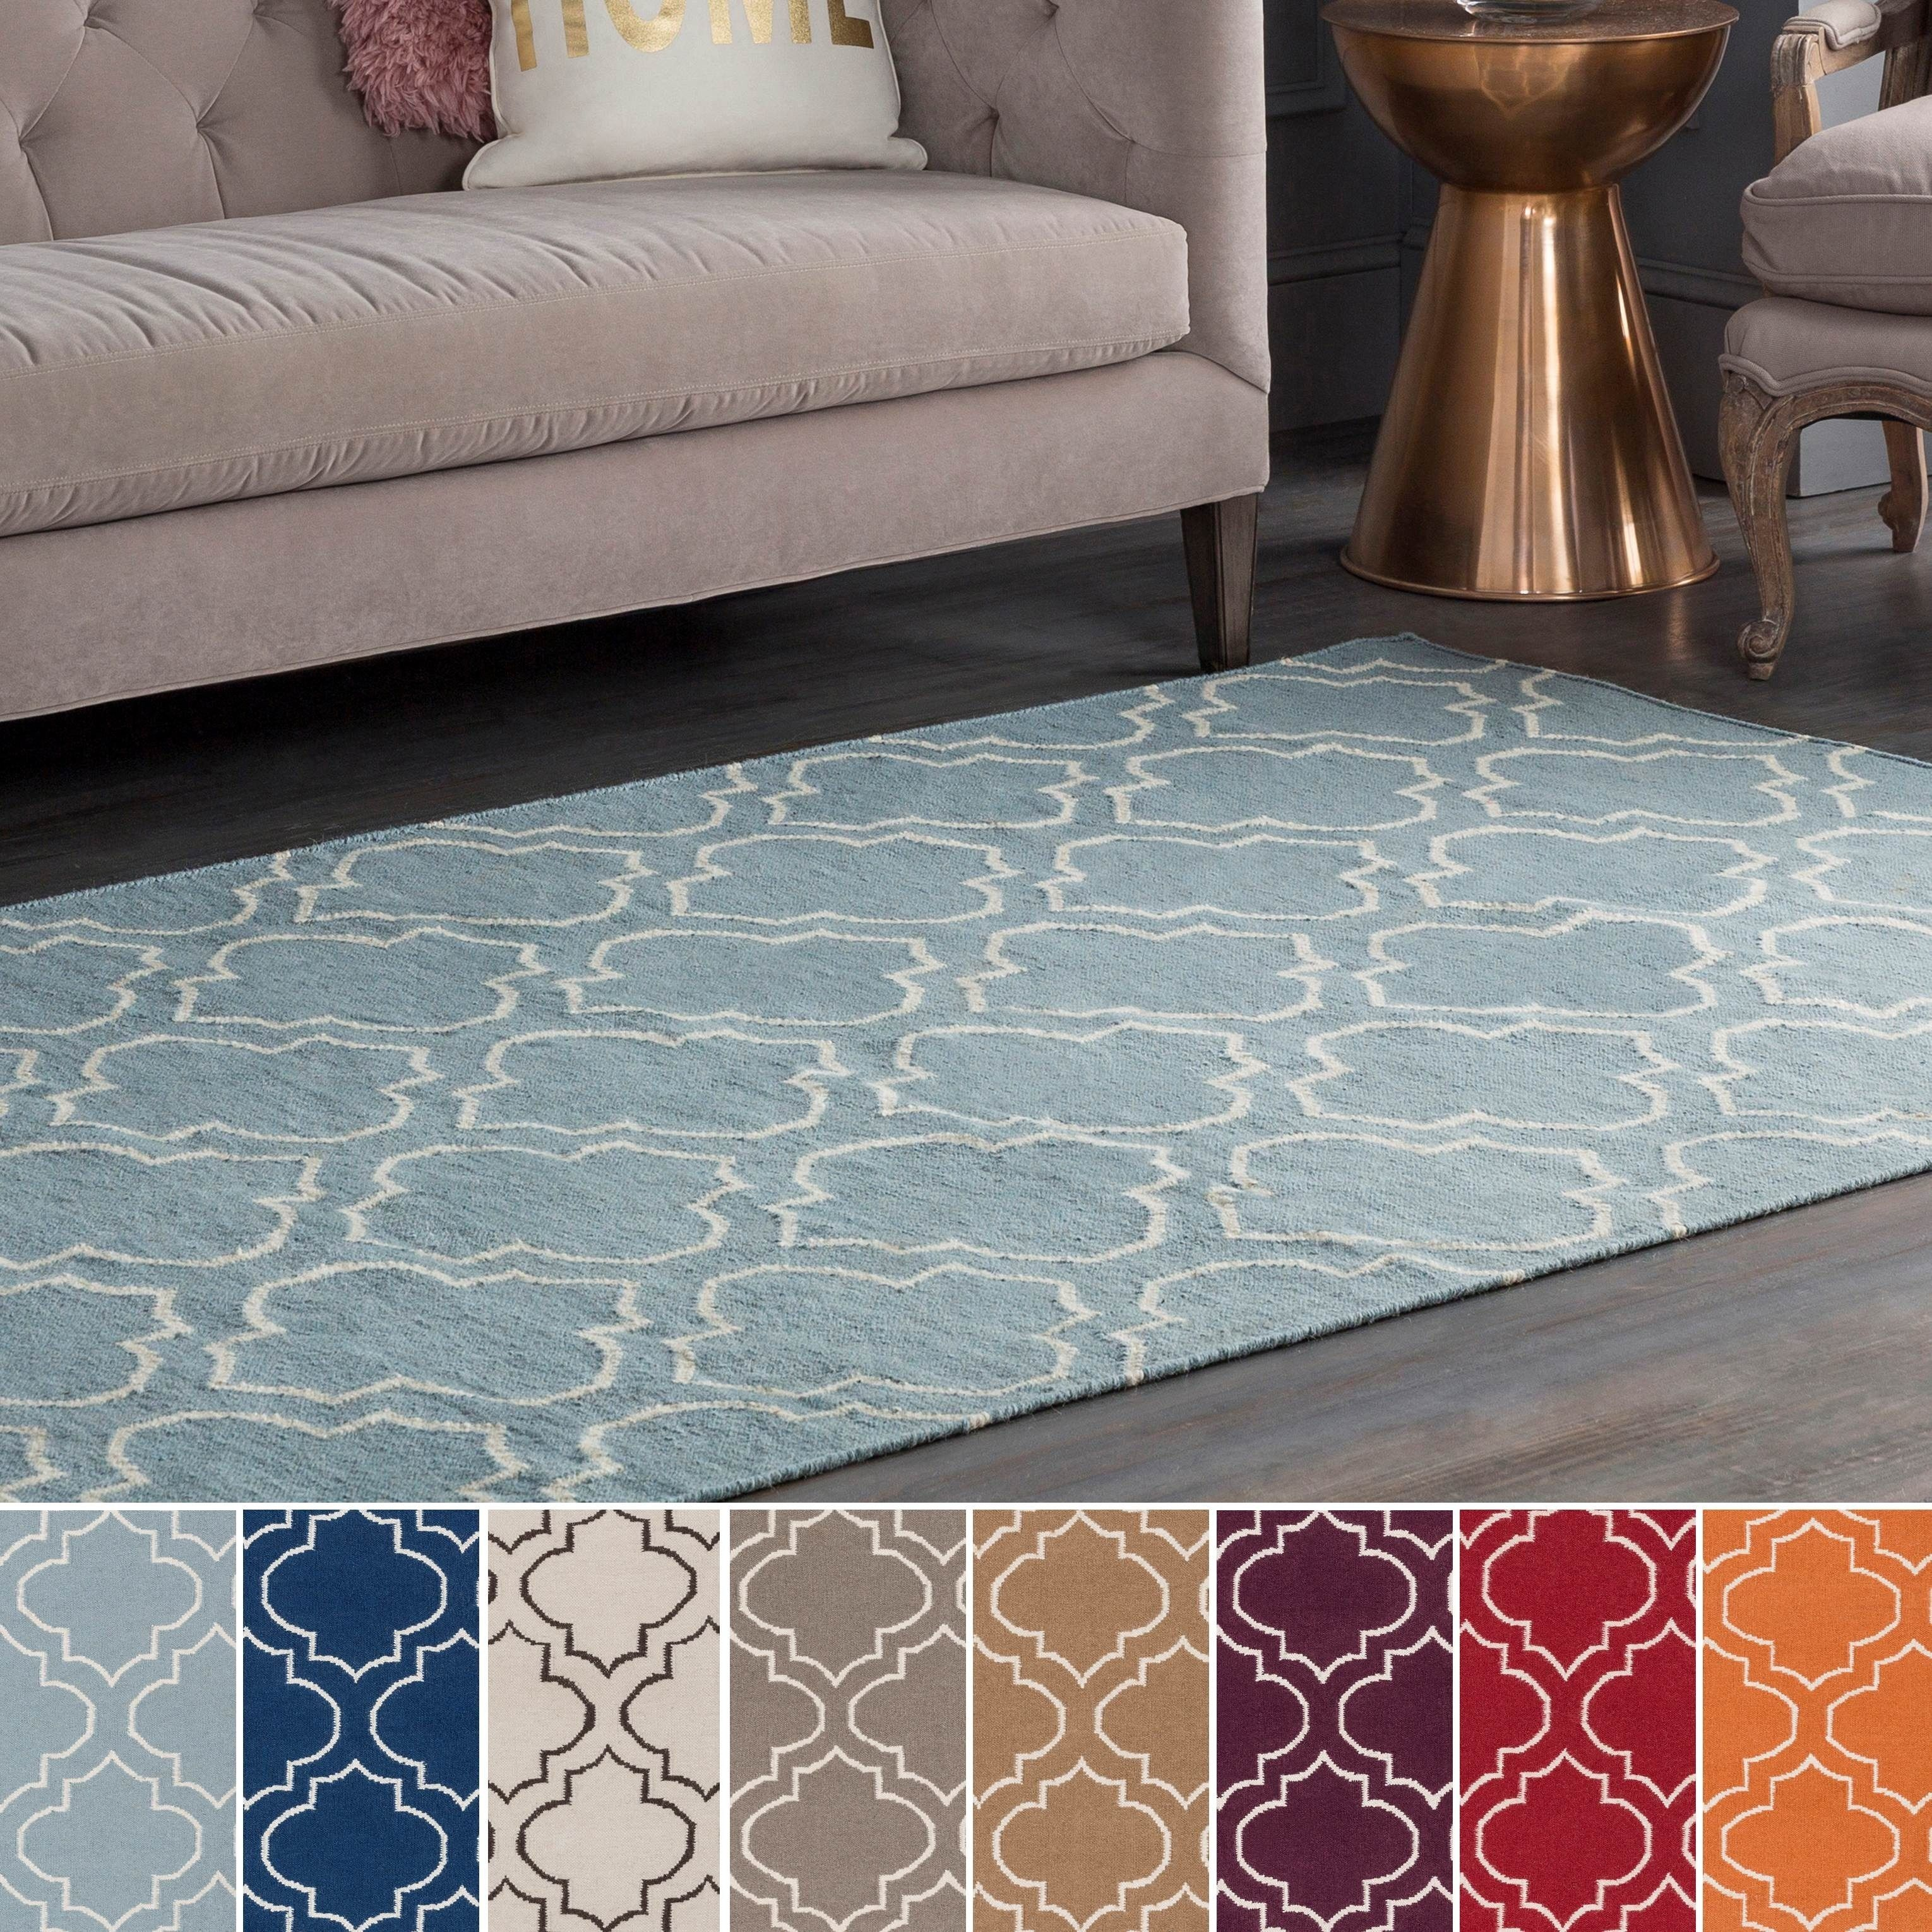 6 7 X9 Loomed Solid Area Rug Gray Safavieh Adult Unisex Contemporary Area Rugs Area Rugs Rugs